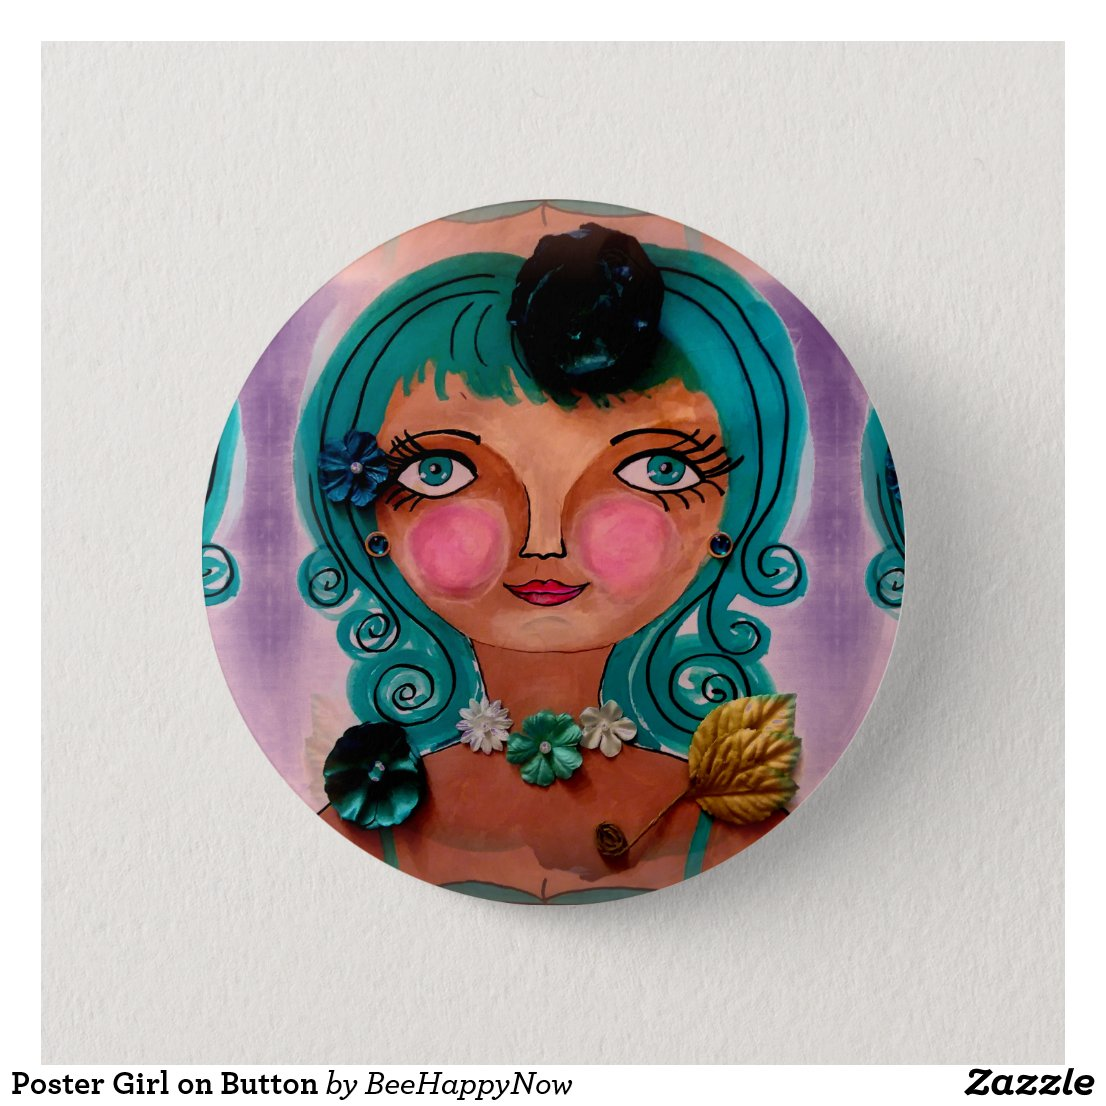 Poster Girl on Button